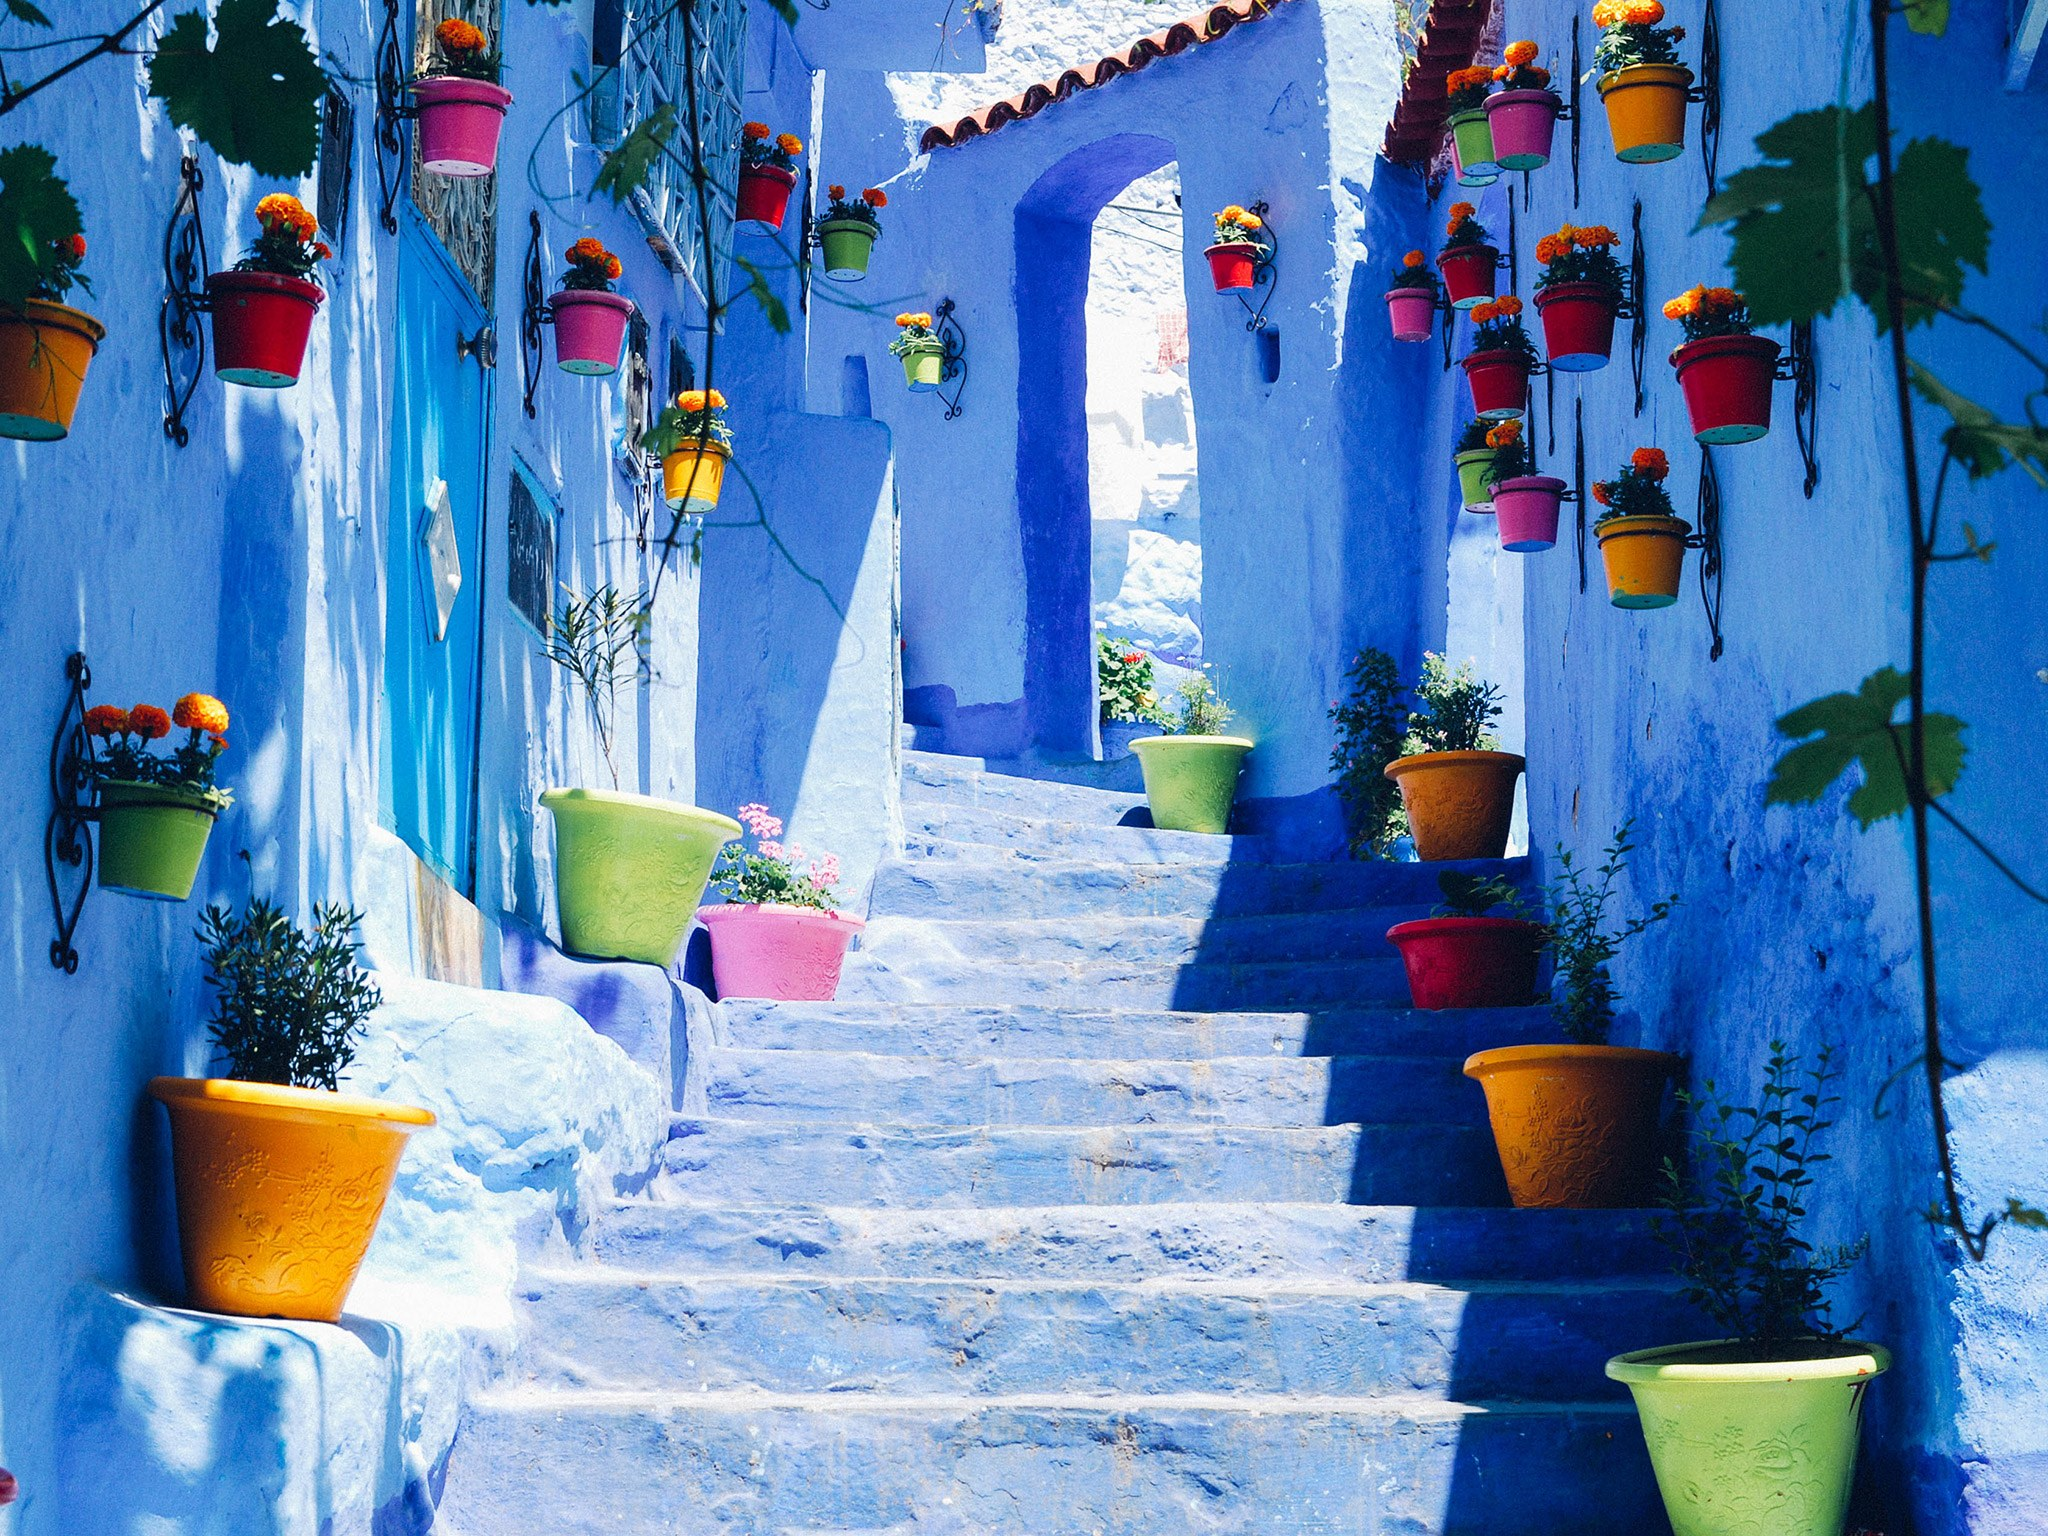 Streets of Chefchaouen